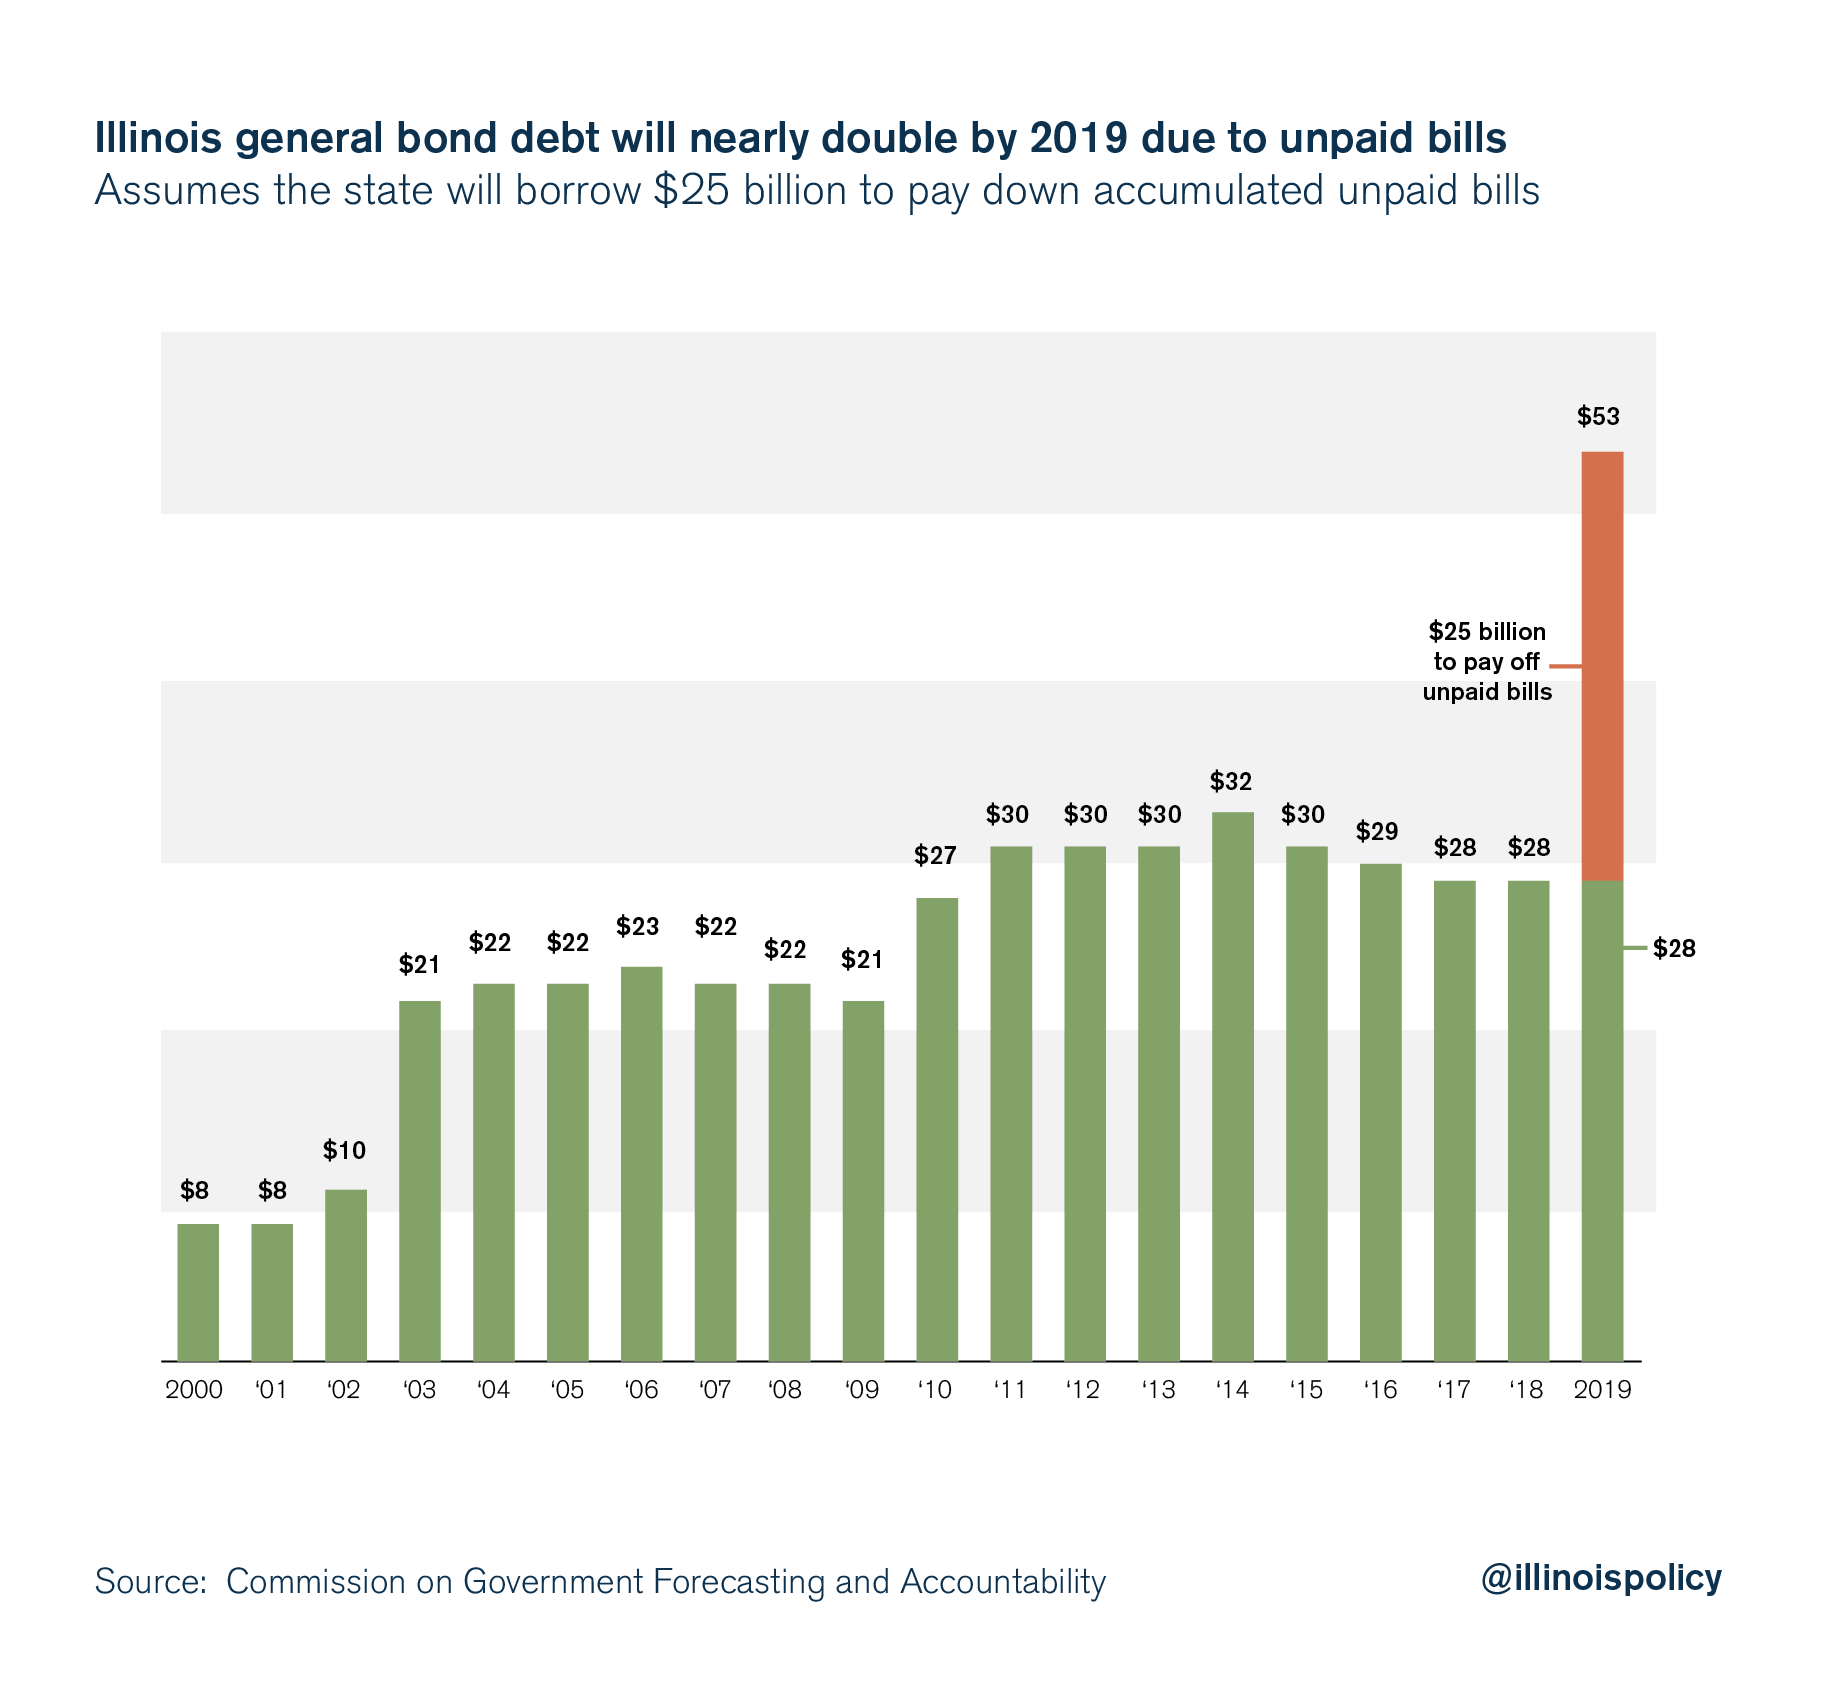 illinois general bond debt